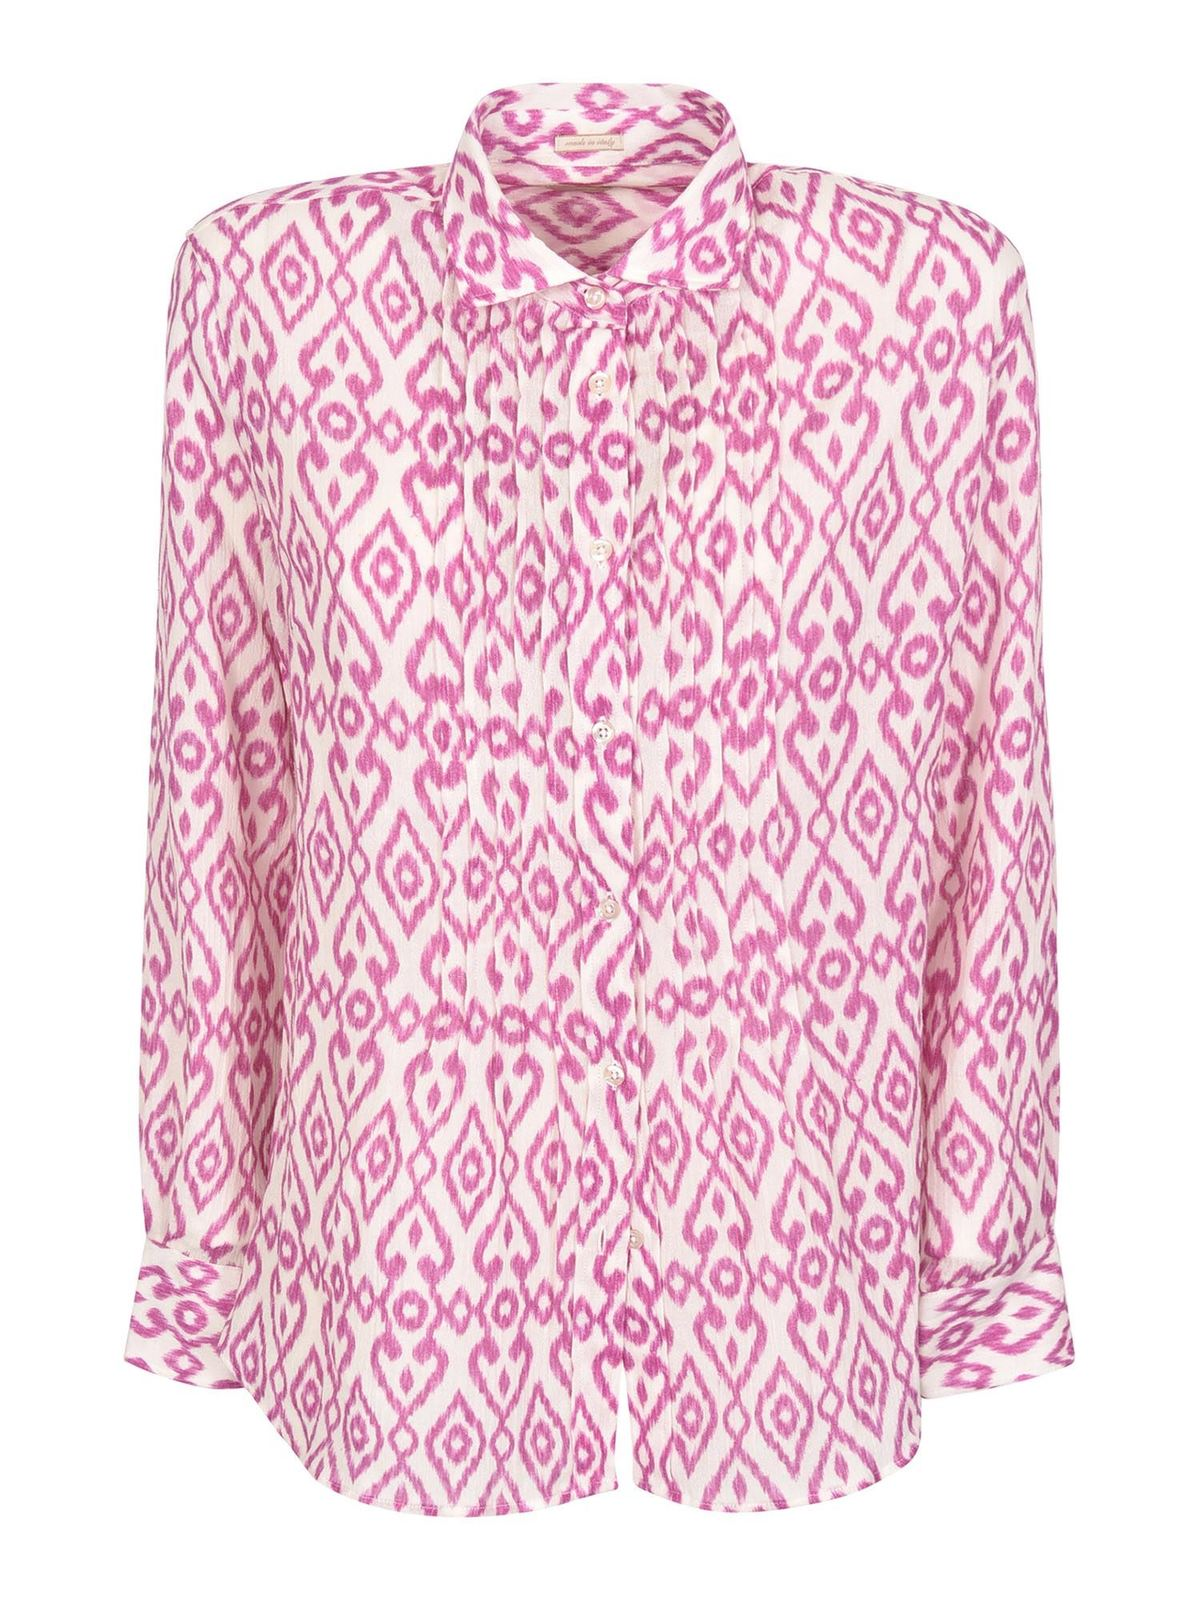 Massimo Alba Cottons DEA PRINTED SHIRT IN PINK AND WHITE